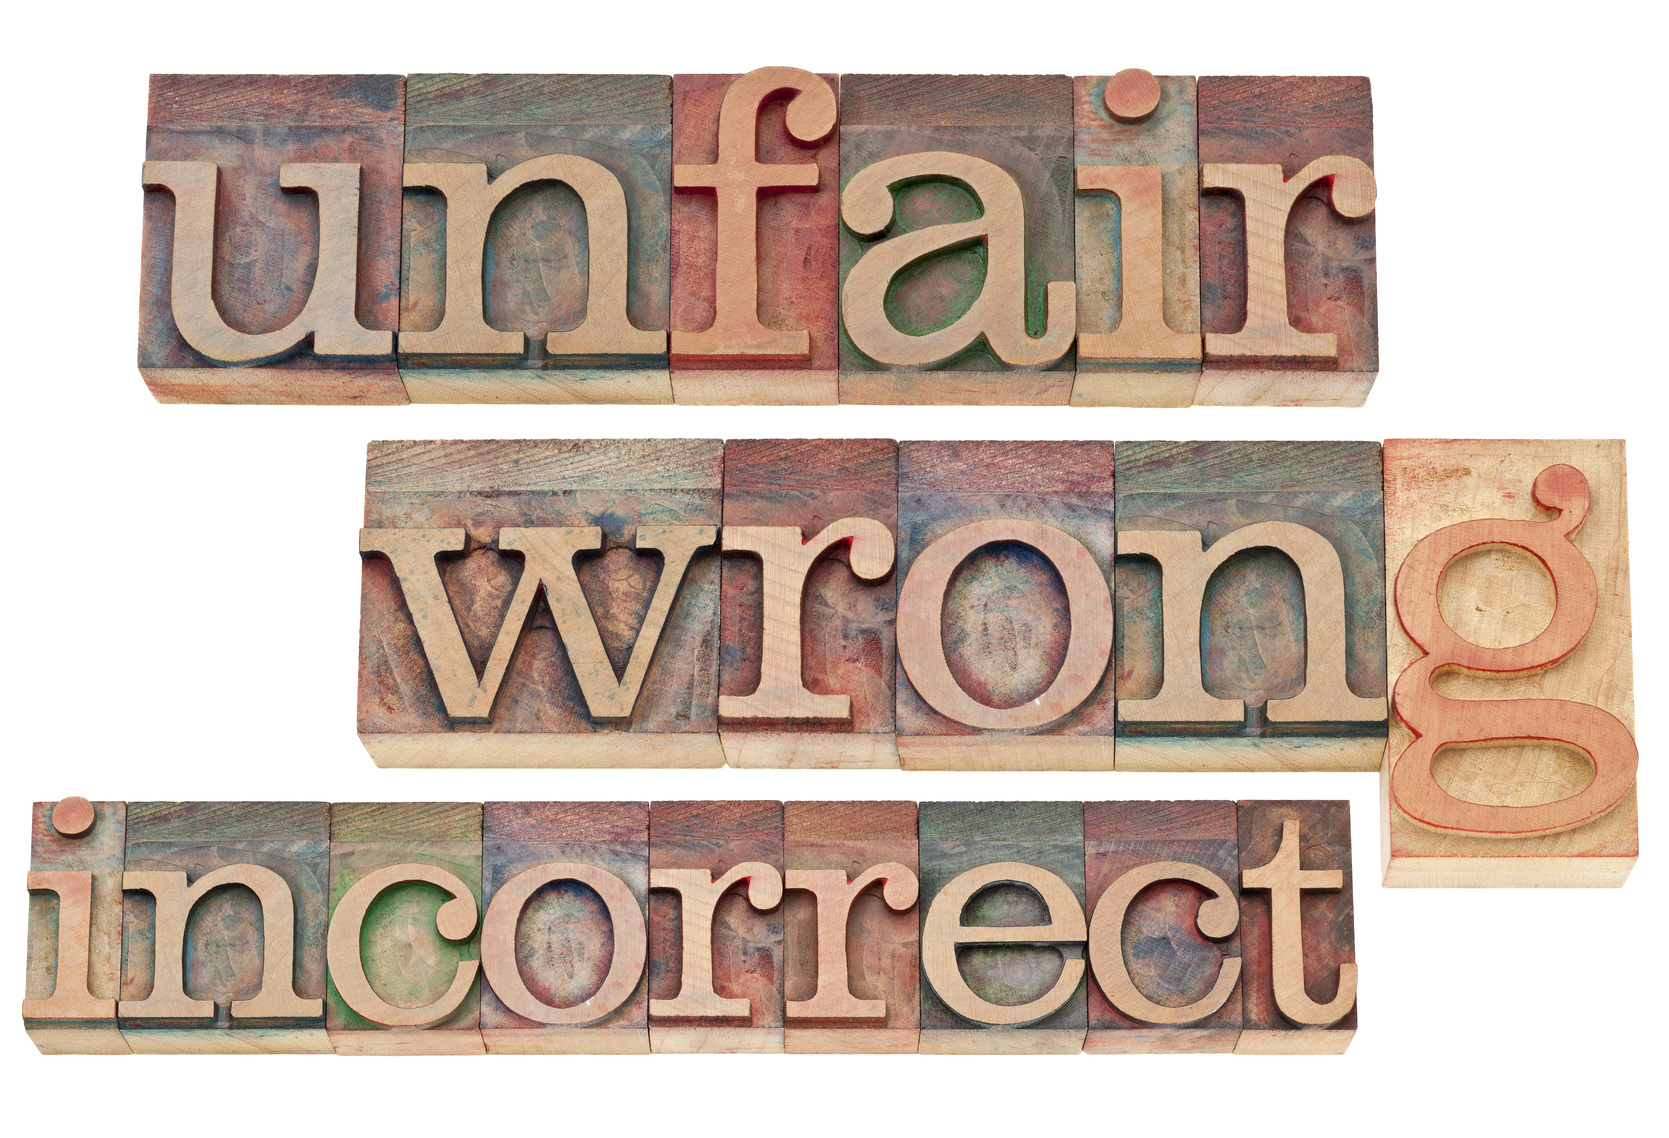 unfair, wrong, incorrect -